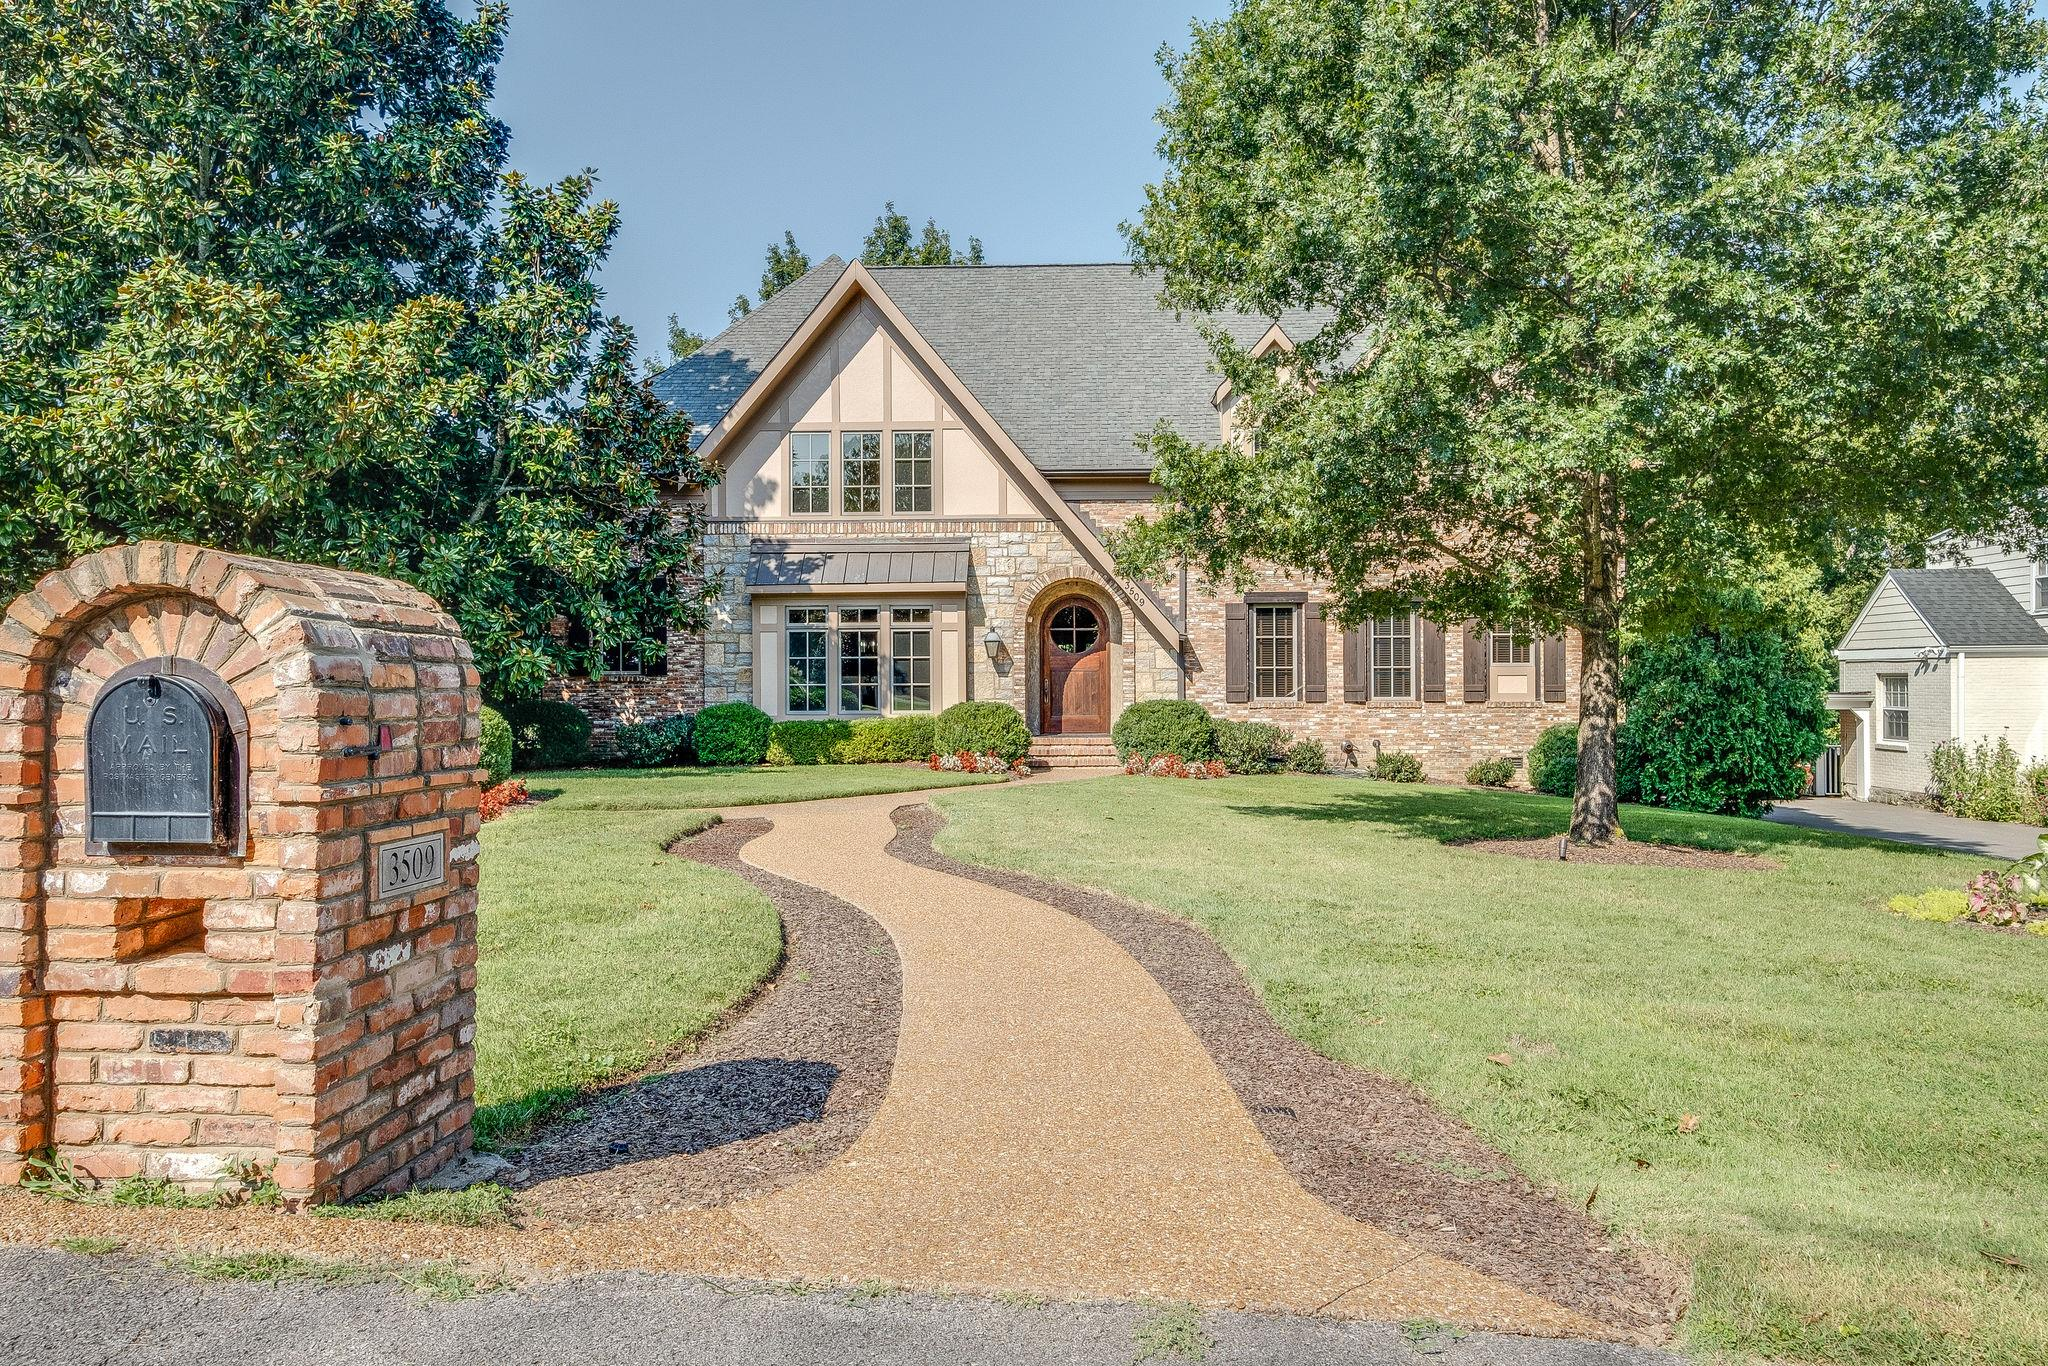 $1,650,000 - 4Br/5Ba -  for Sale in Woodmont Acres, Nashville